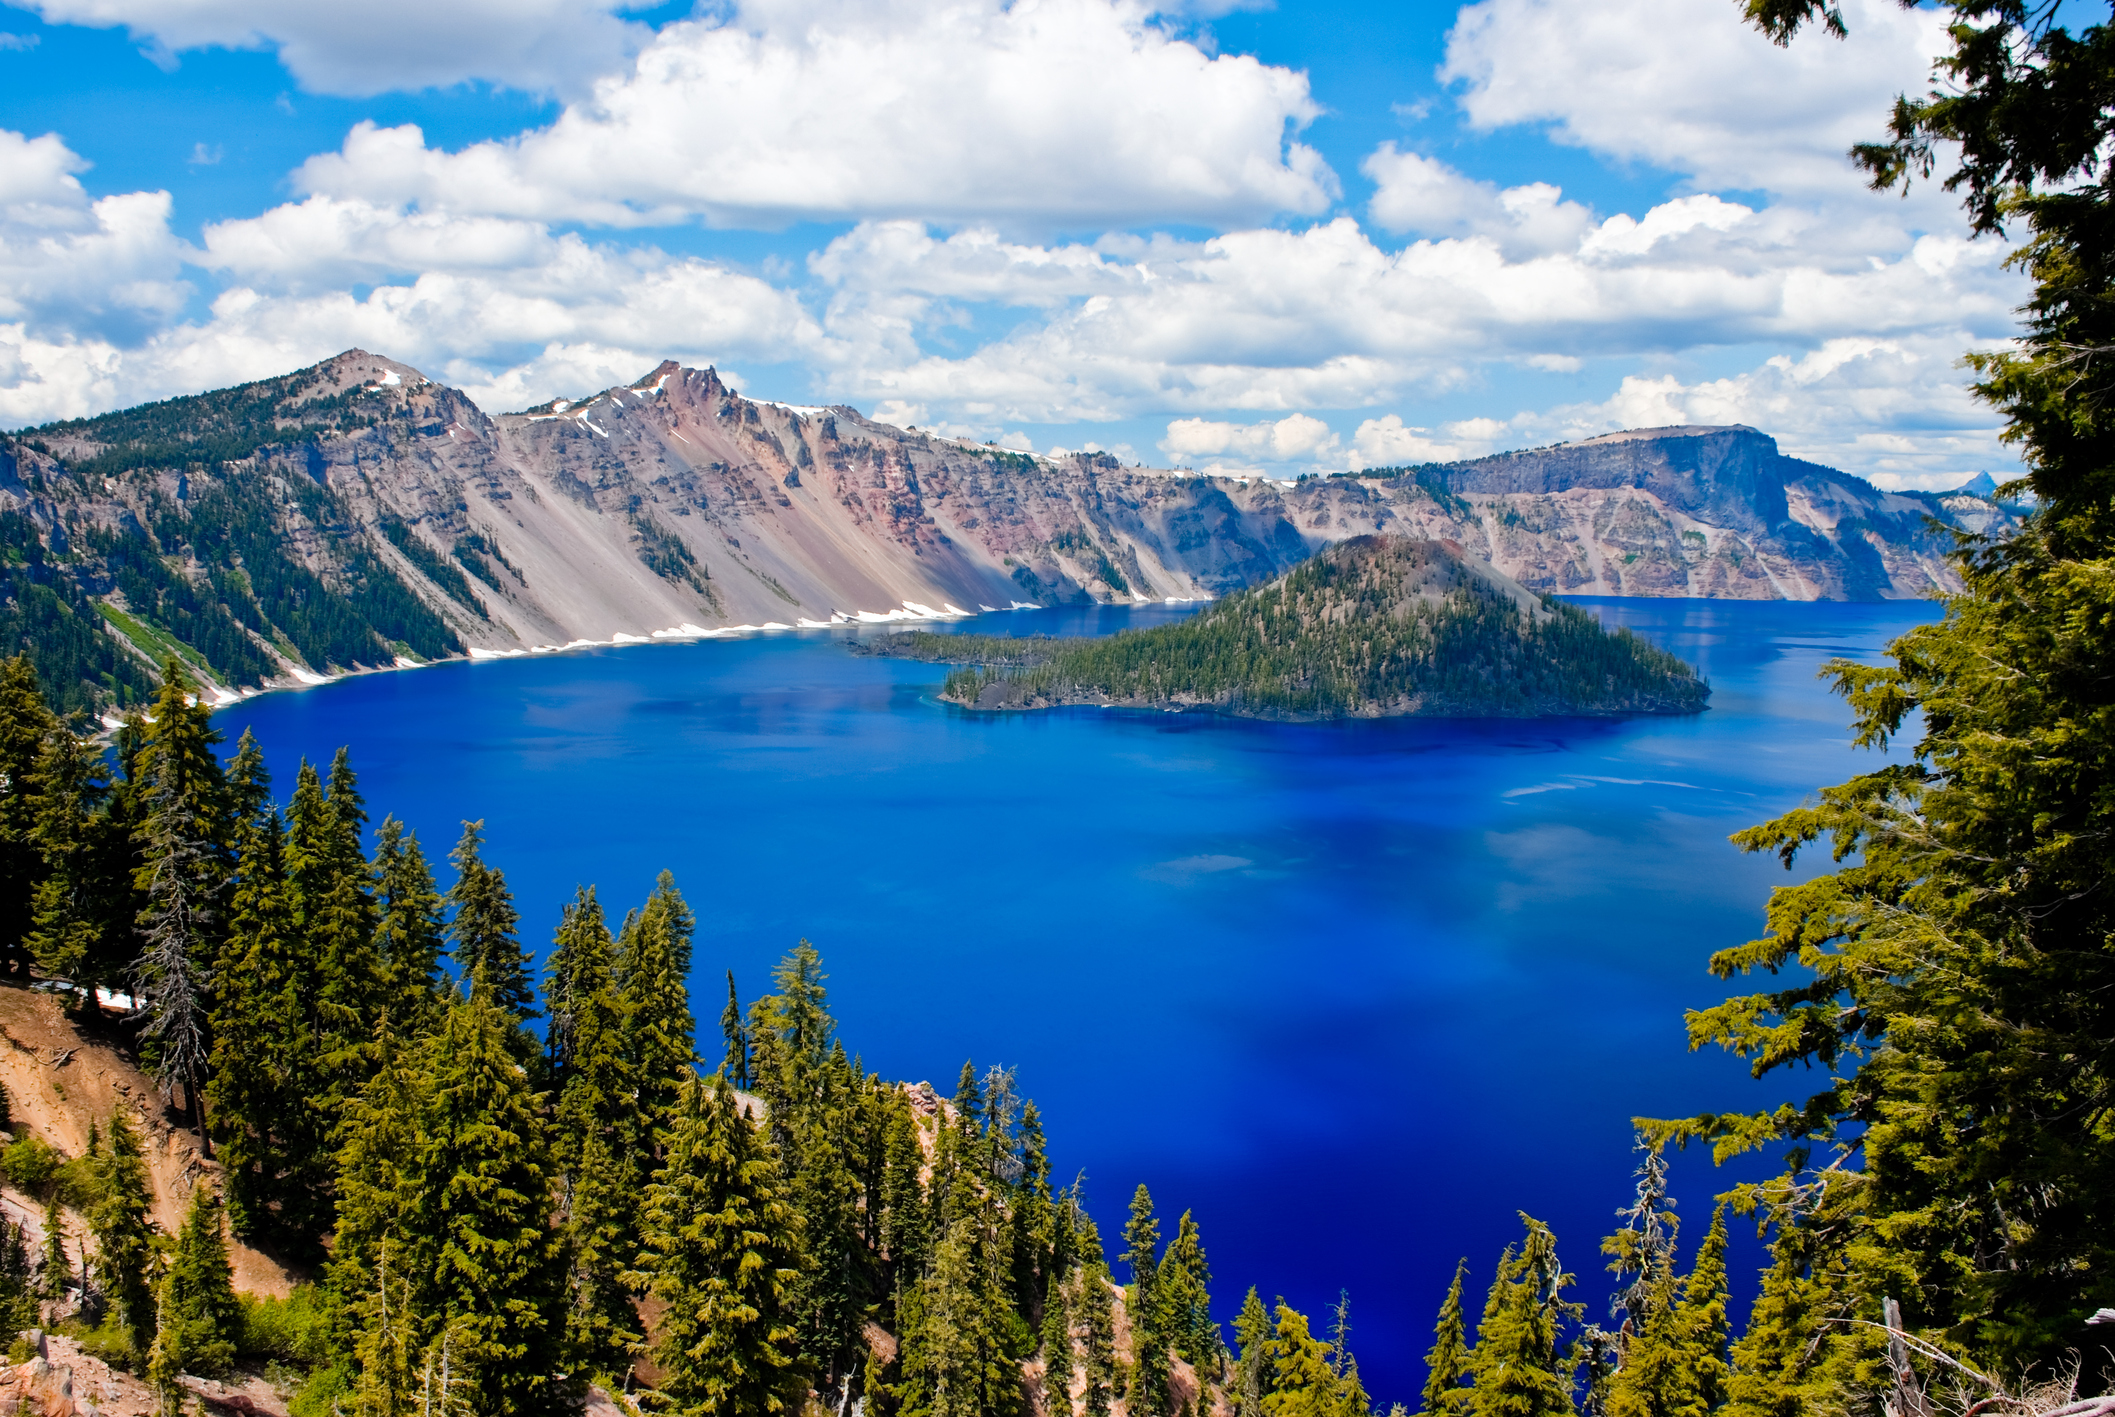 4-Day Oregon, Redwood, Crater Lake Tour from San Francisco with Airport Transfer